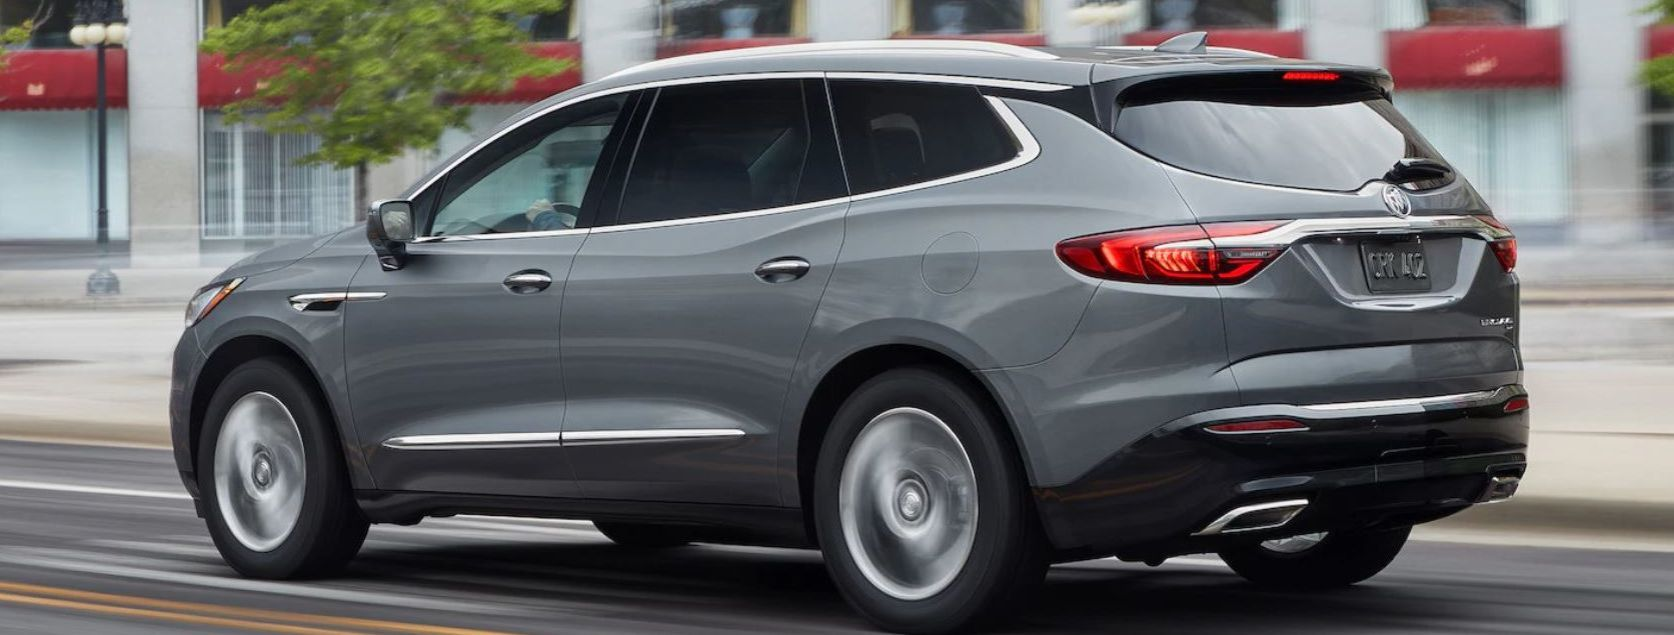 Buick Lease Specials near Boardman, OH